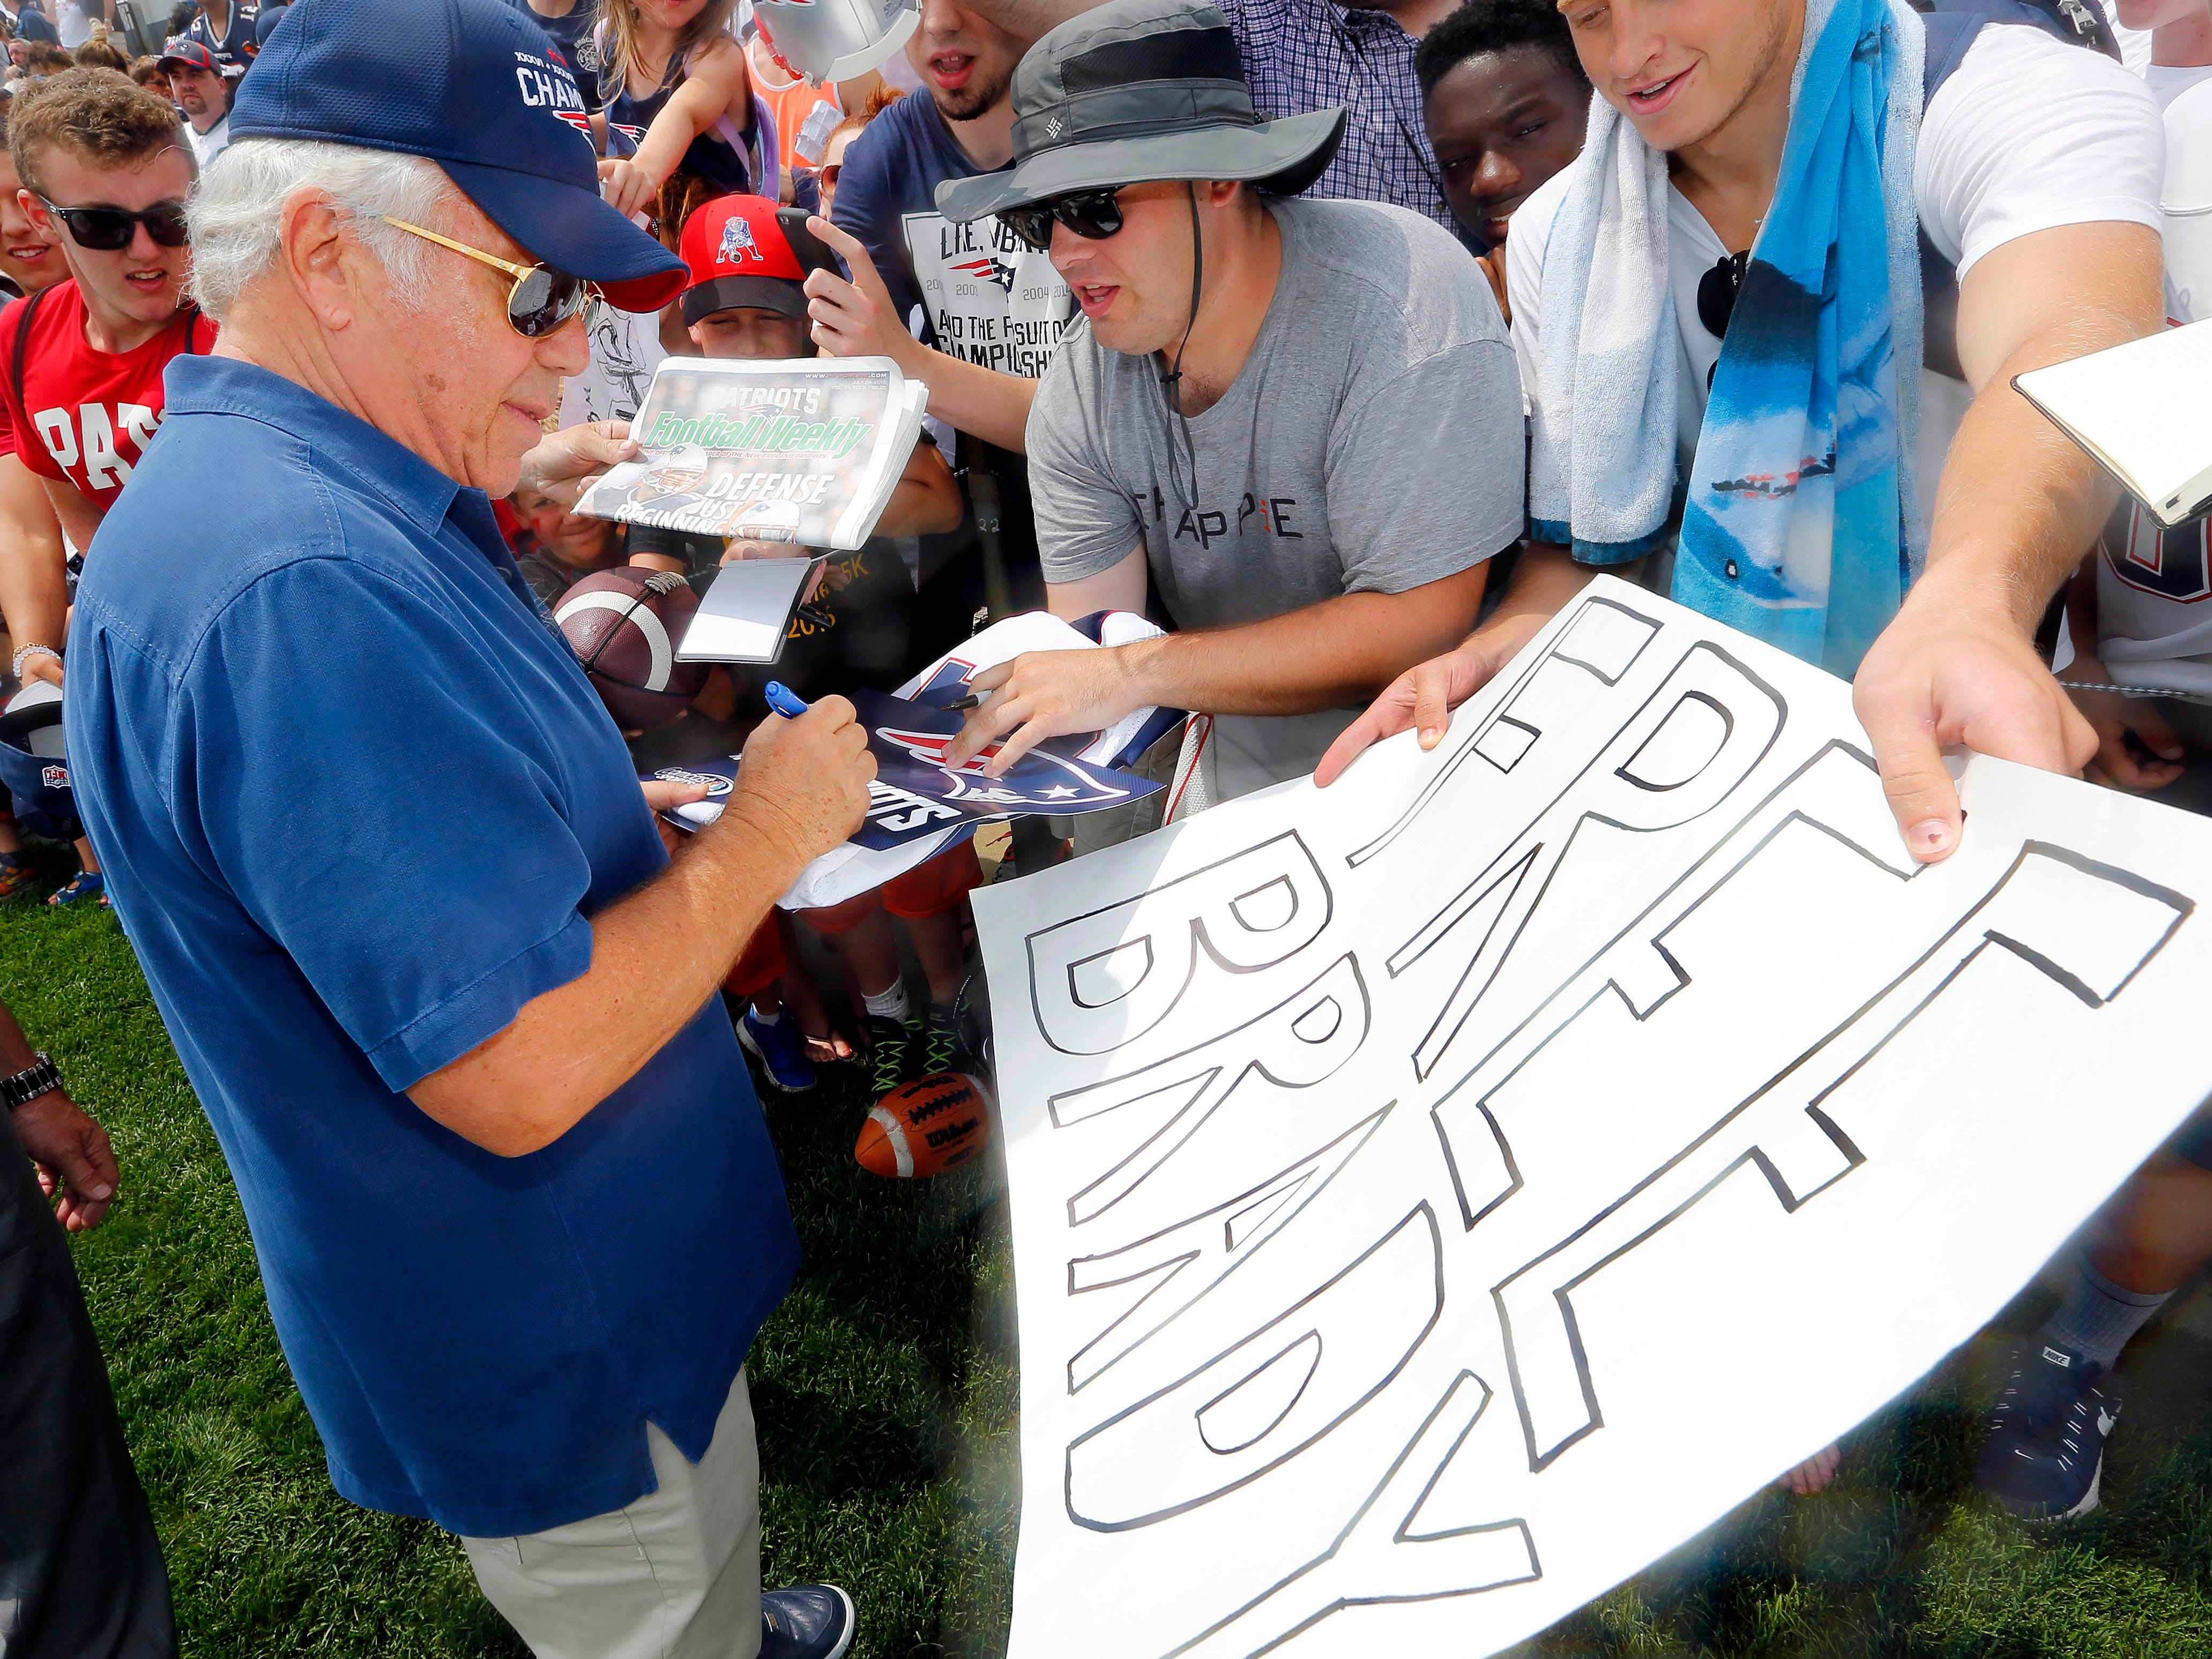 Kraft signs autographs during training camp at Gillette Stadium.